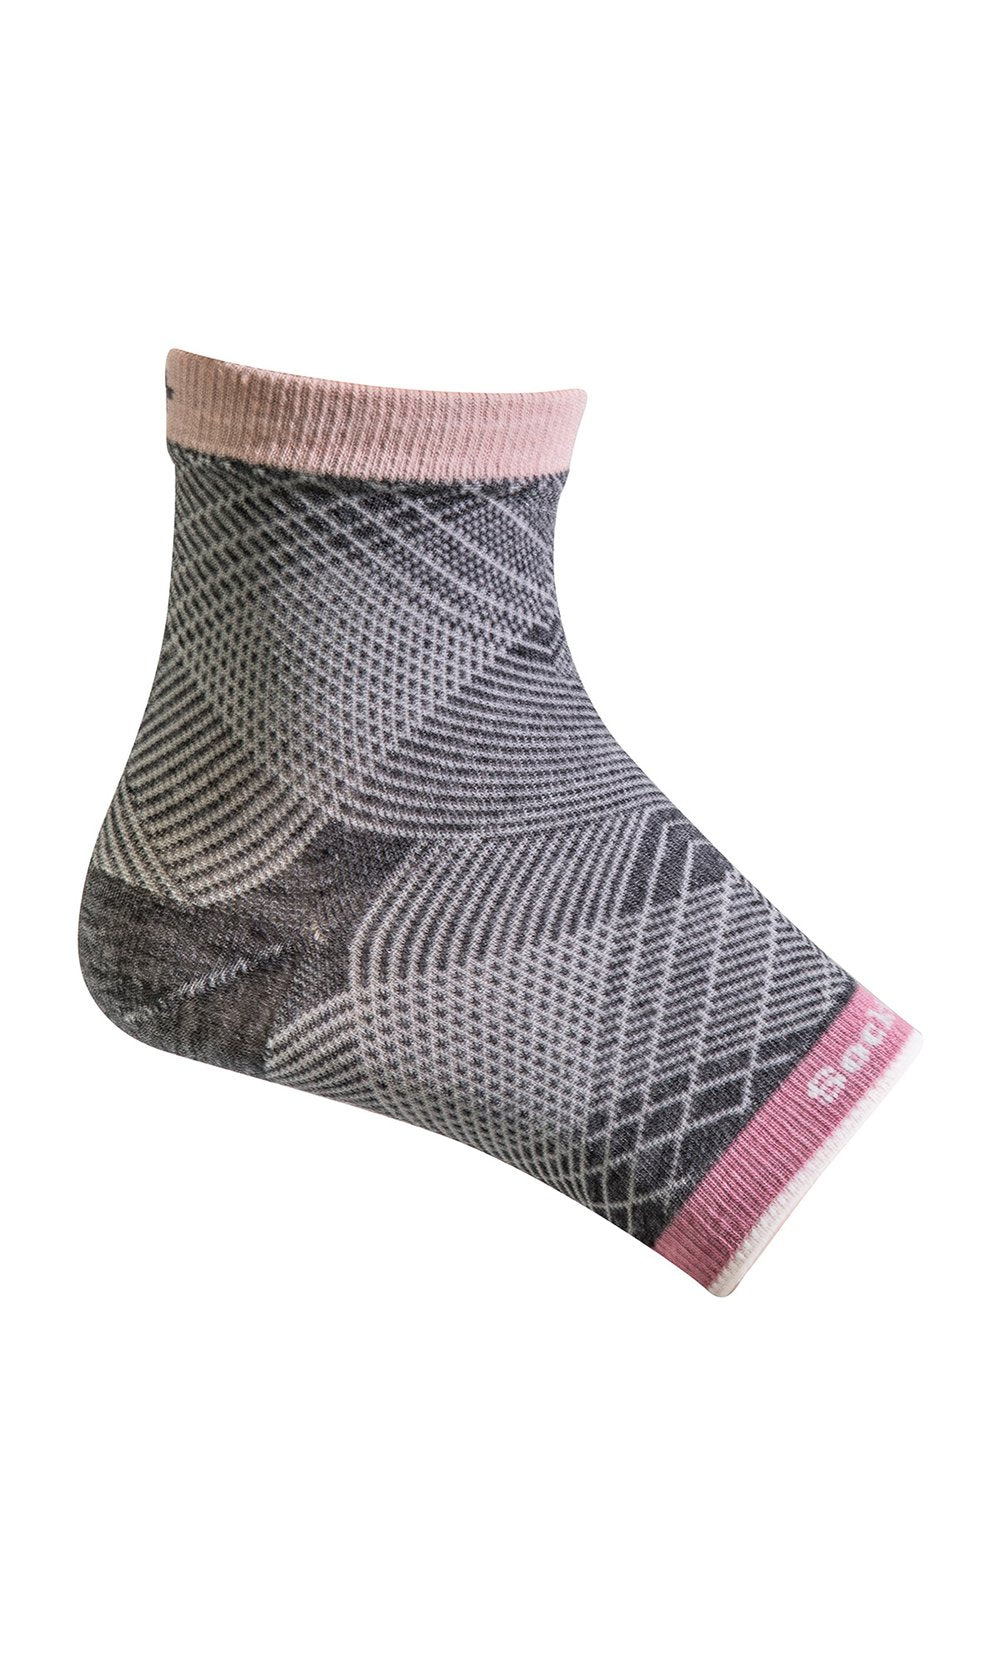 Sockwell Women's Plantar Support Compression Sleeve